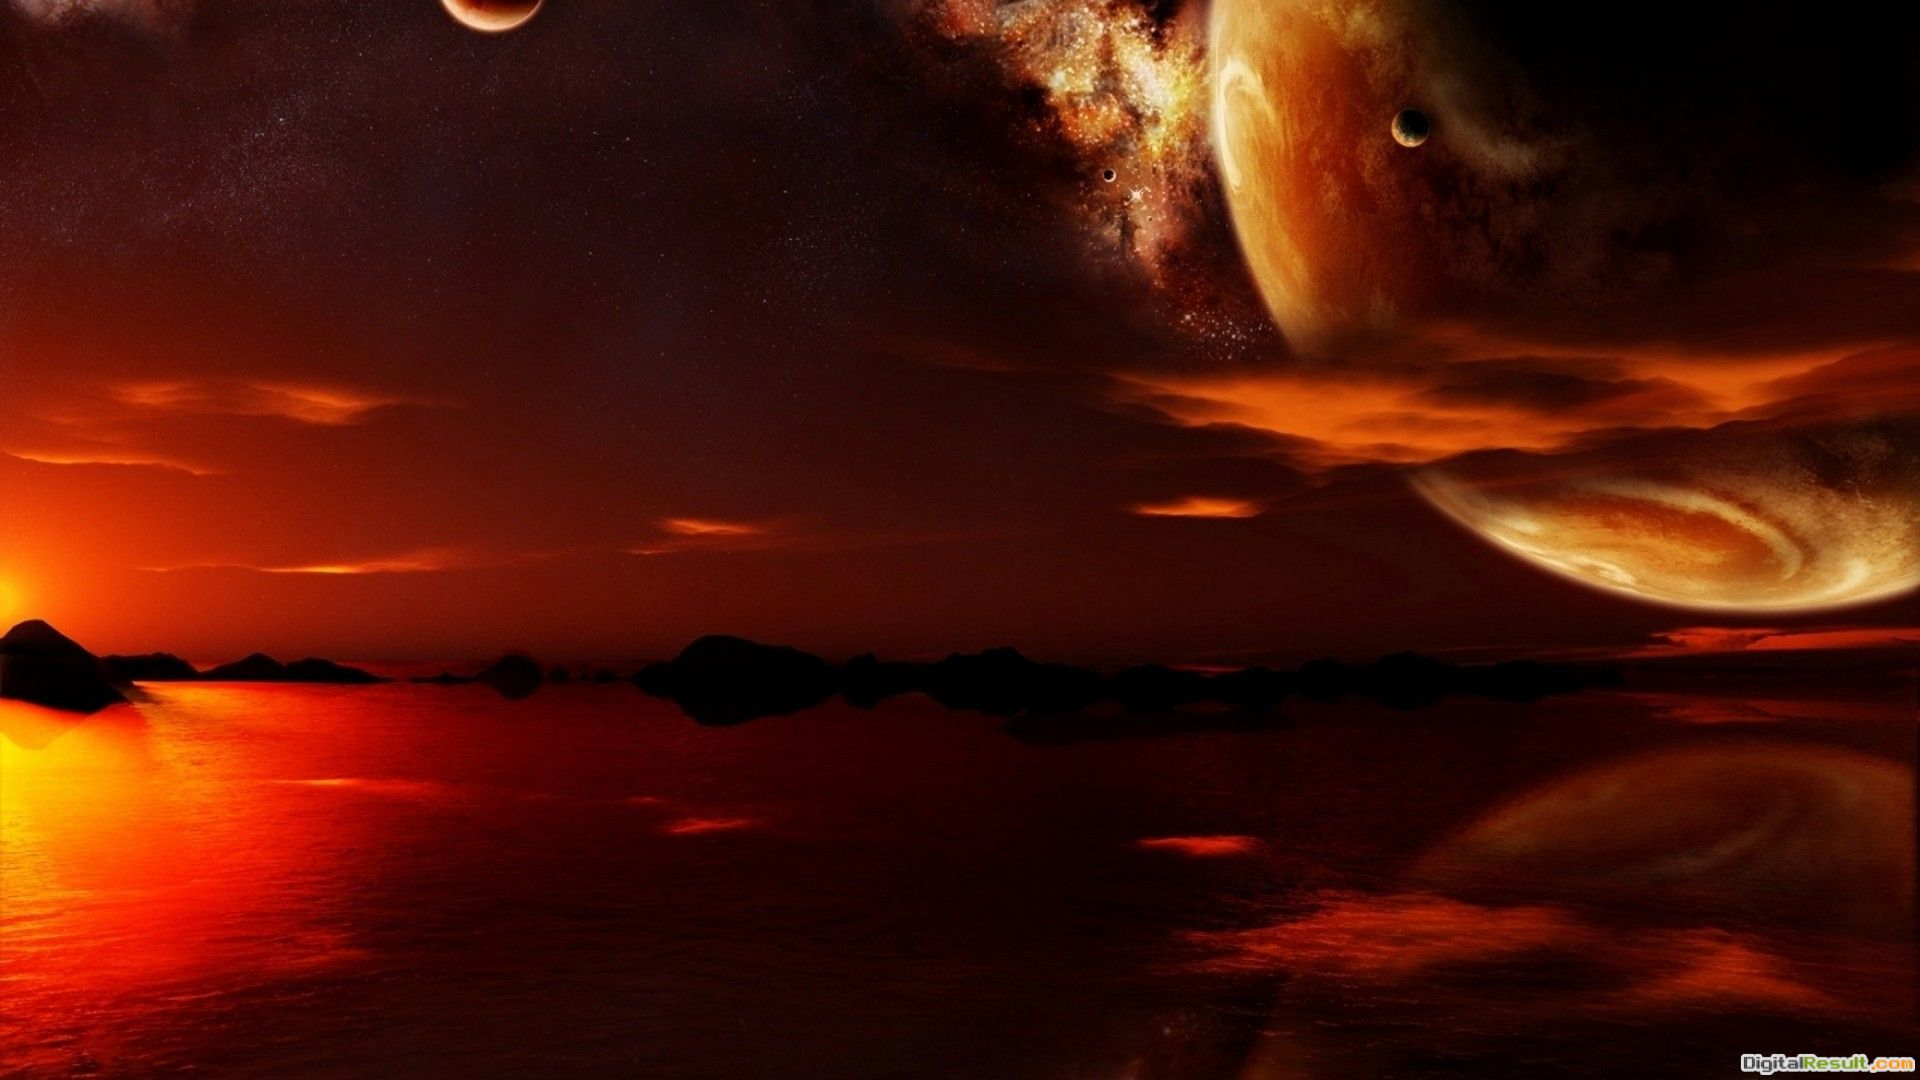 Red planet wallpaper #9269 1086